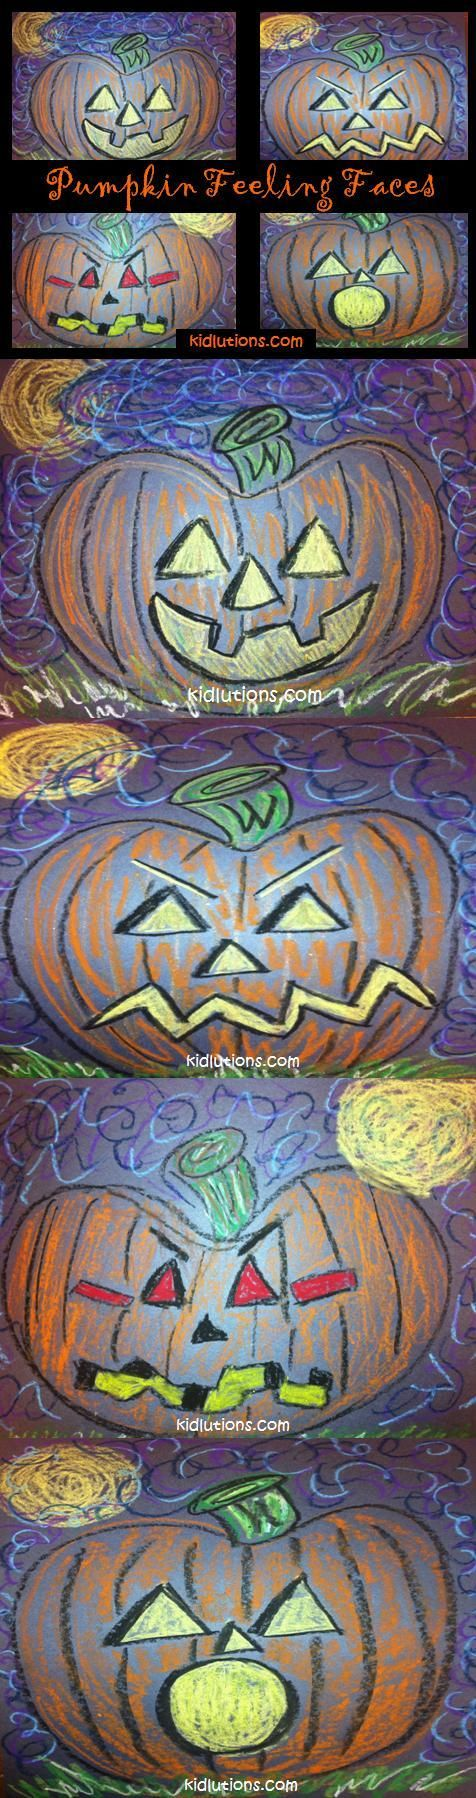 Pumpkins and Feelings-perfect to stay festive and teach feelings to my halloween loving students!